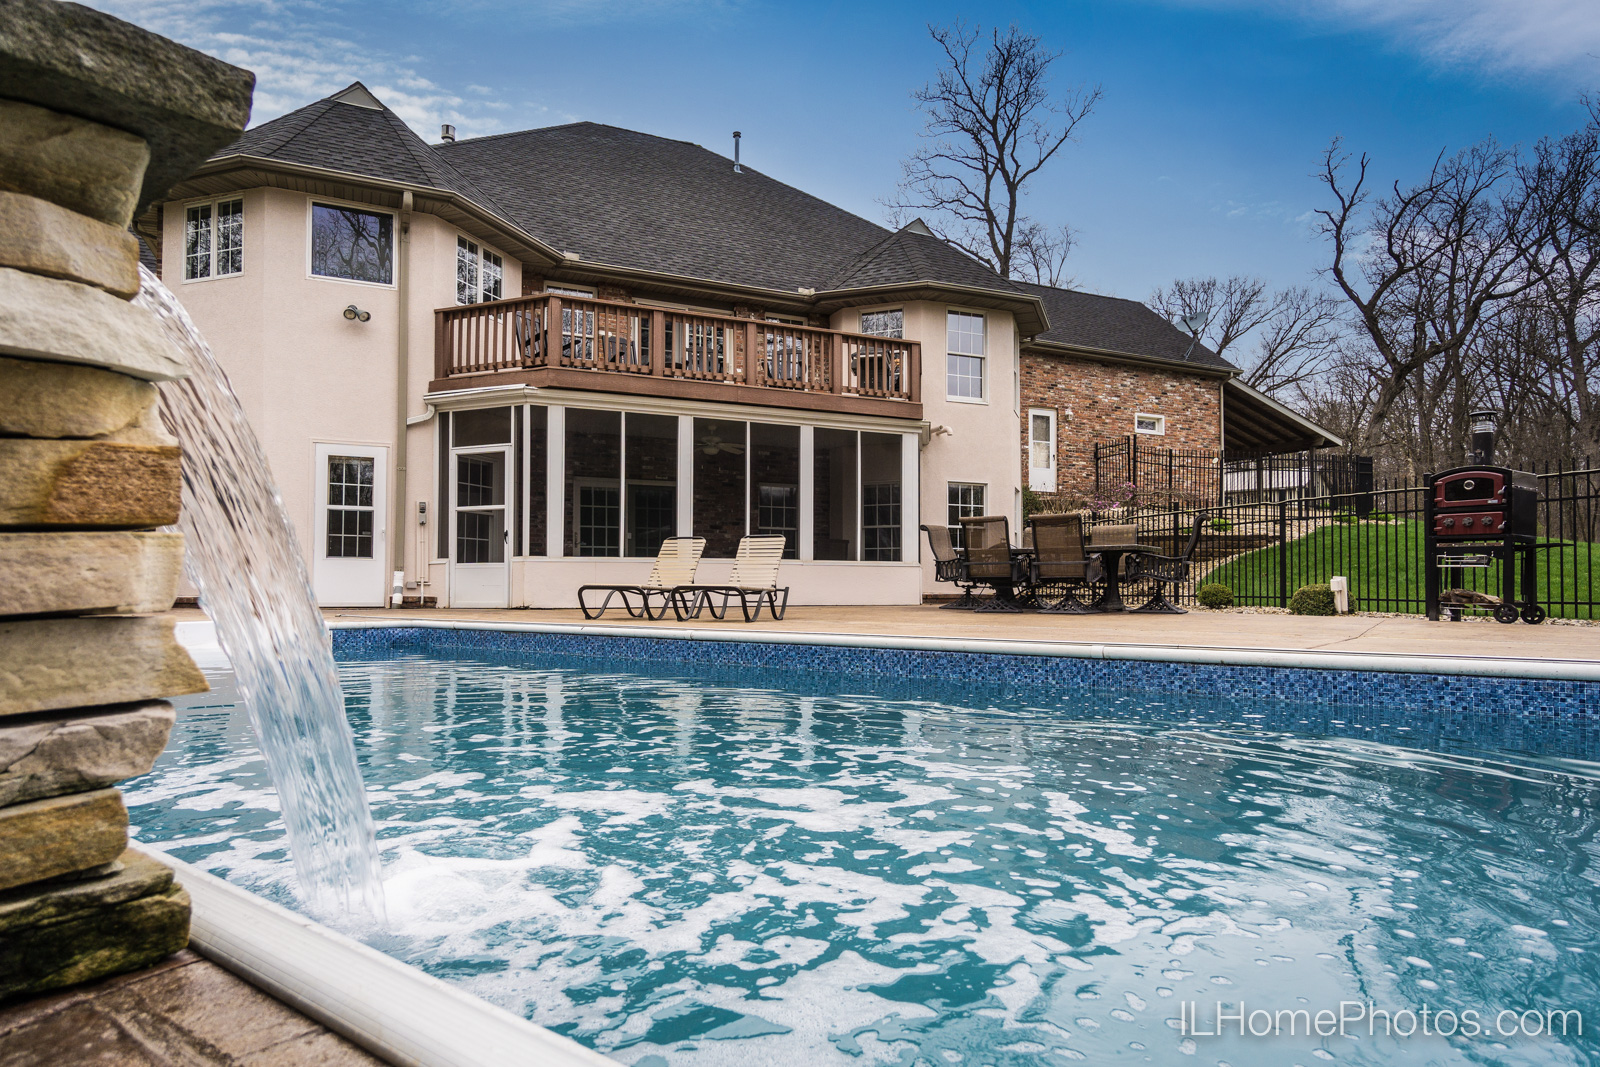 Exterior pool and patio photograph for real estate :: Illinois Home Photography by Michael Gowin, Lincoln, IL